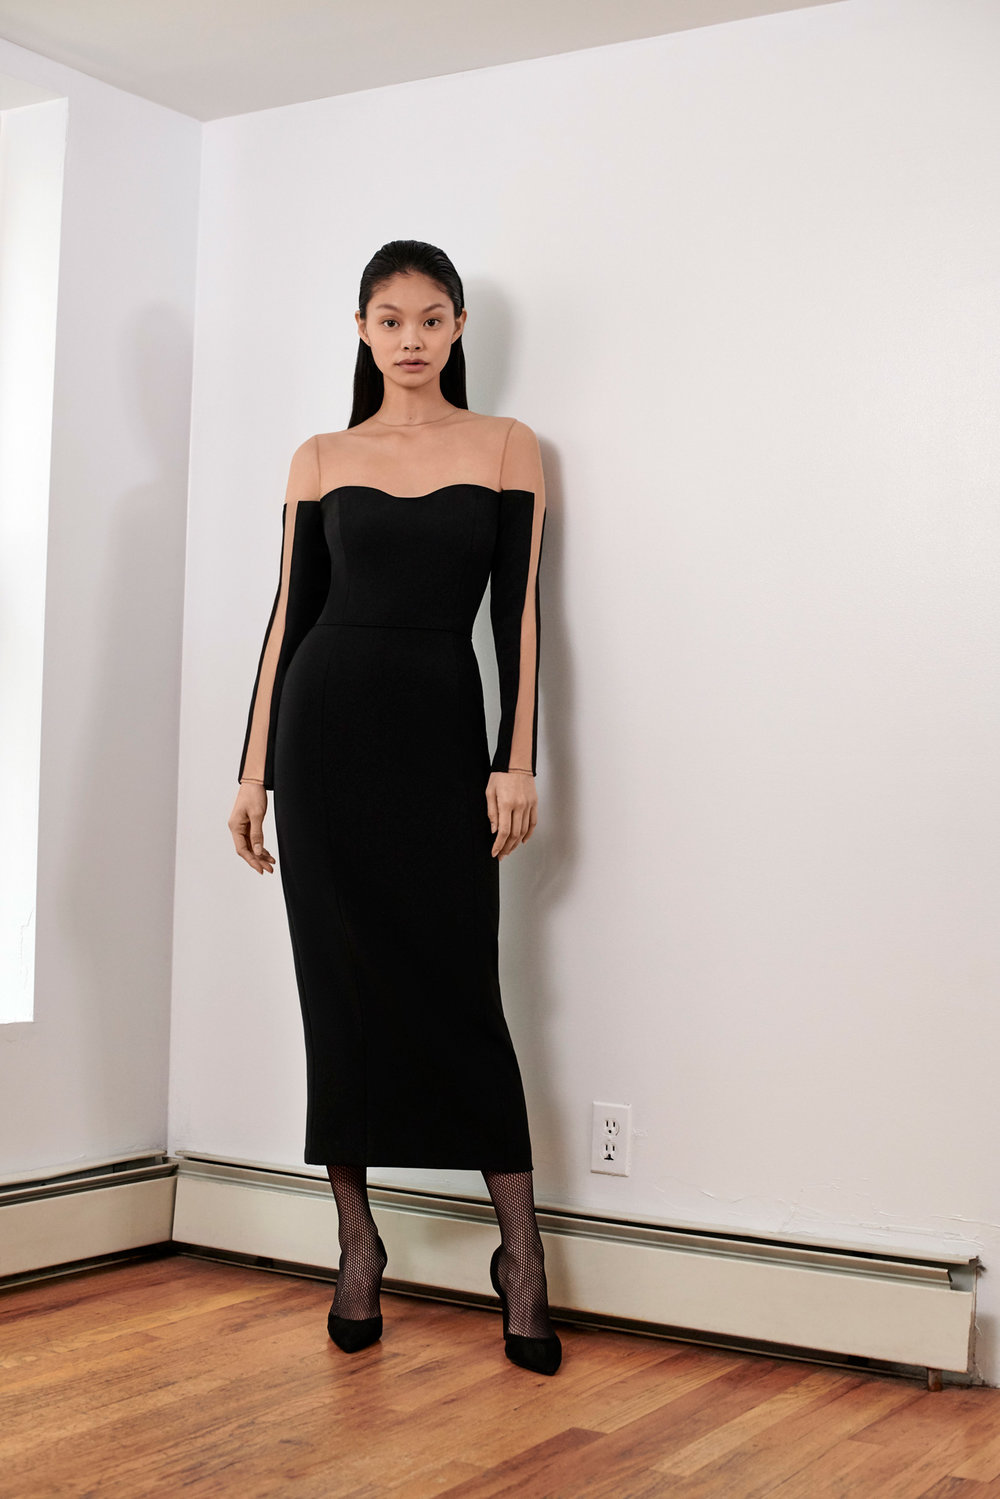 JULIANNA-BASS-PF19-11-The-Rosario-Dress-WEB.jpg